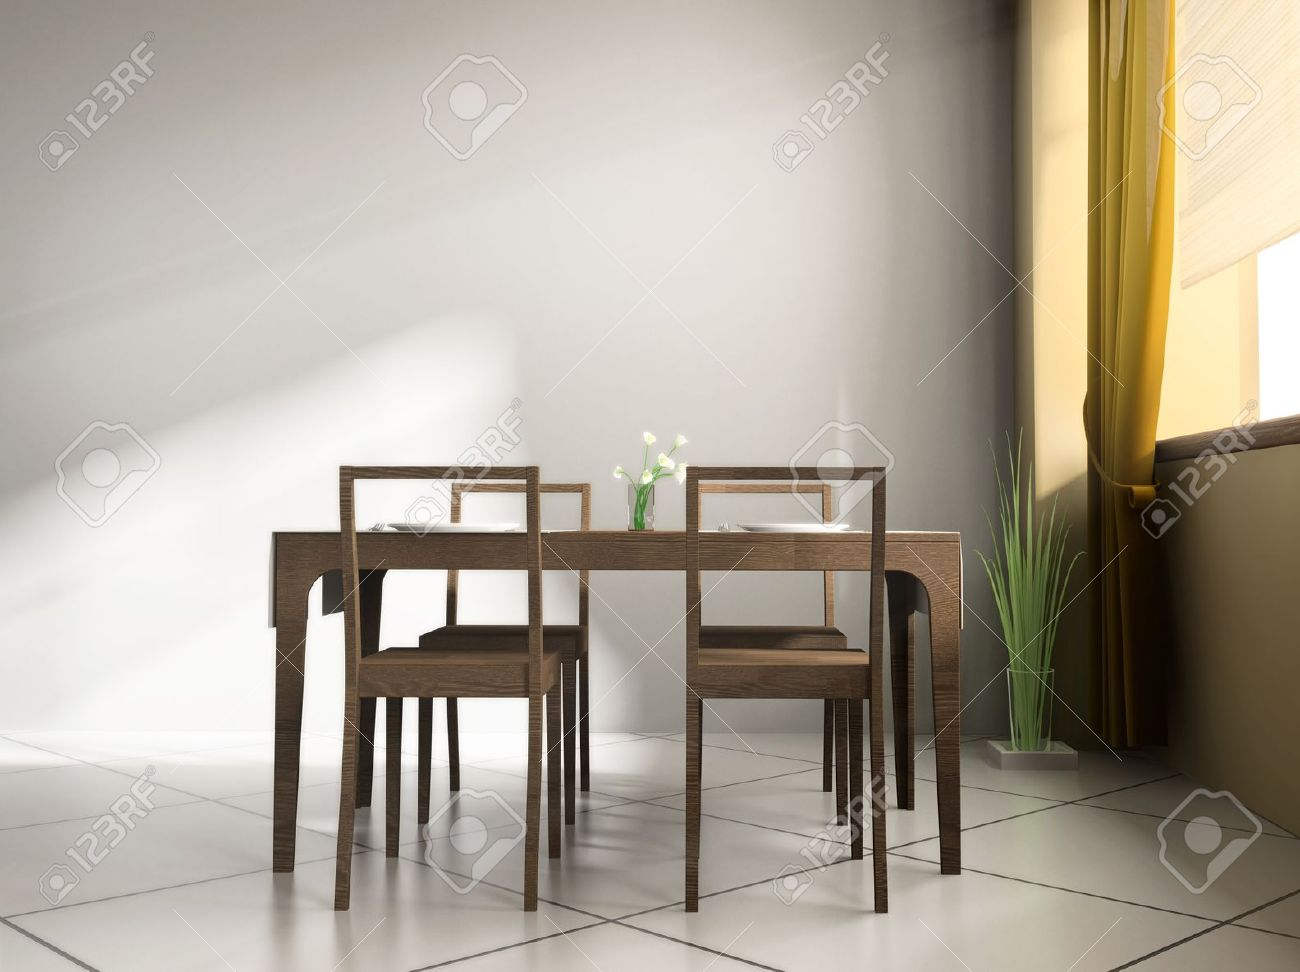 Modern cafe chairs and tables - Dining Table In Modern Cafe 3d Image Stock Photo 12620933